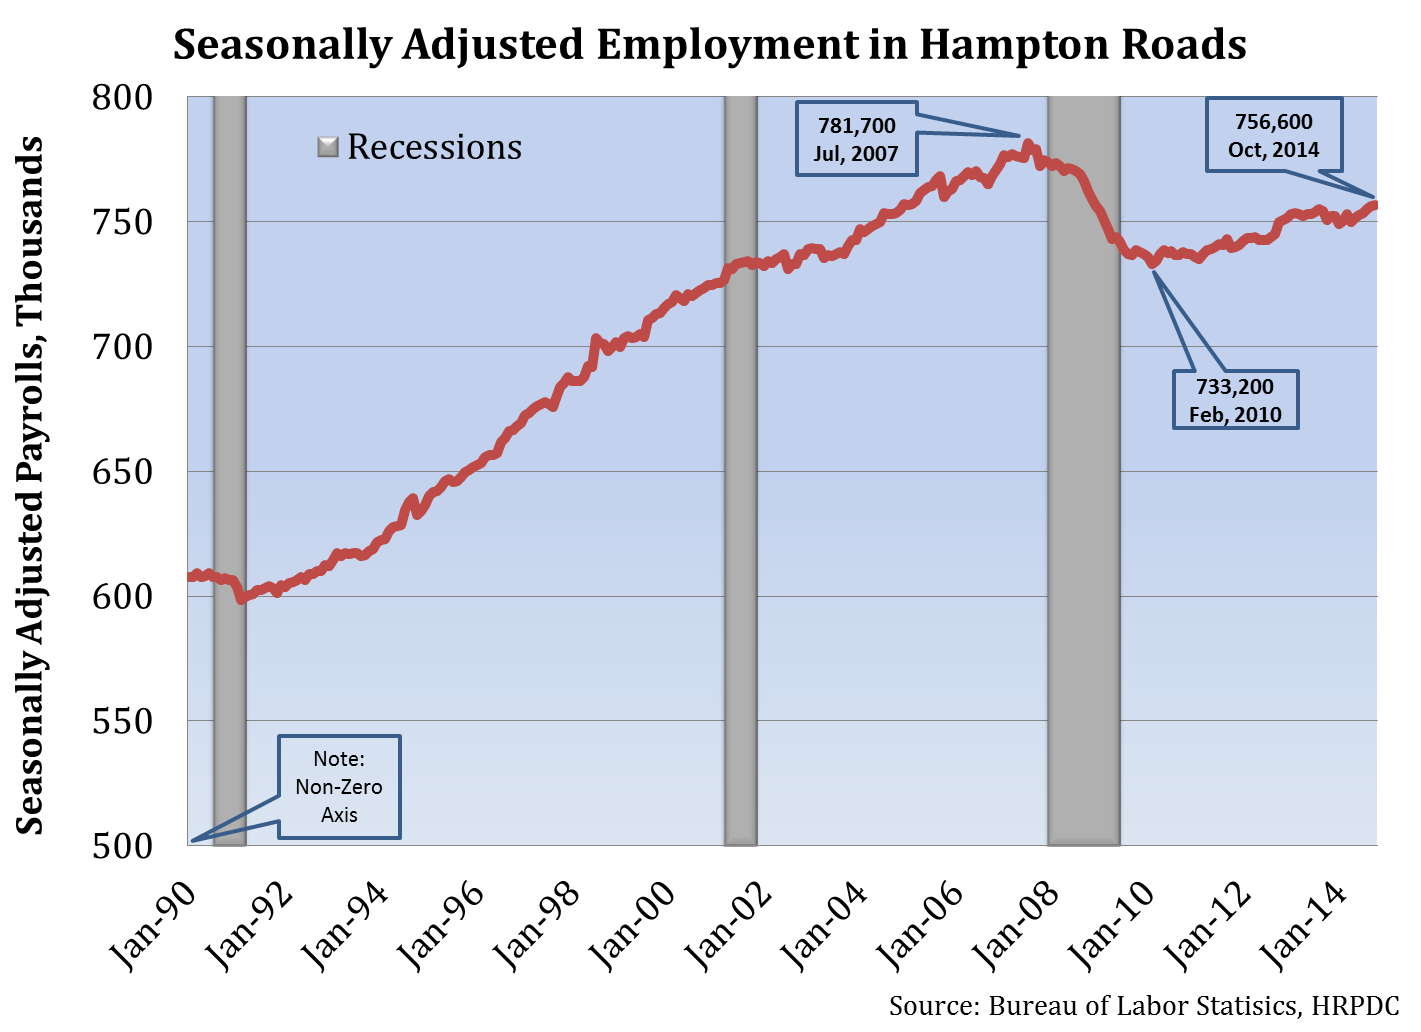 Seasonally Adjusted Employment in Hampton Roads